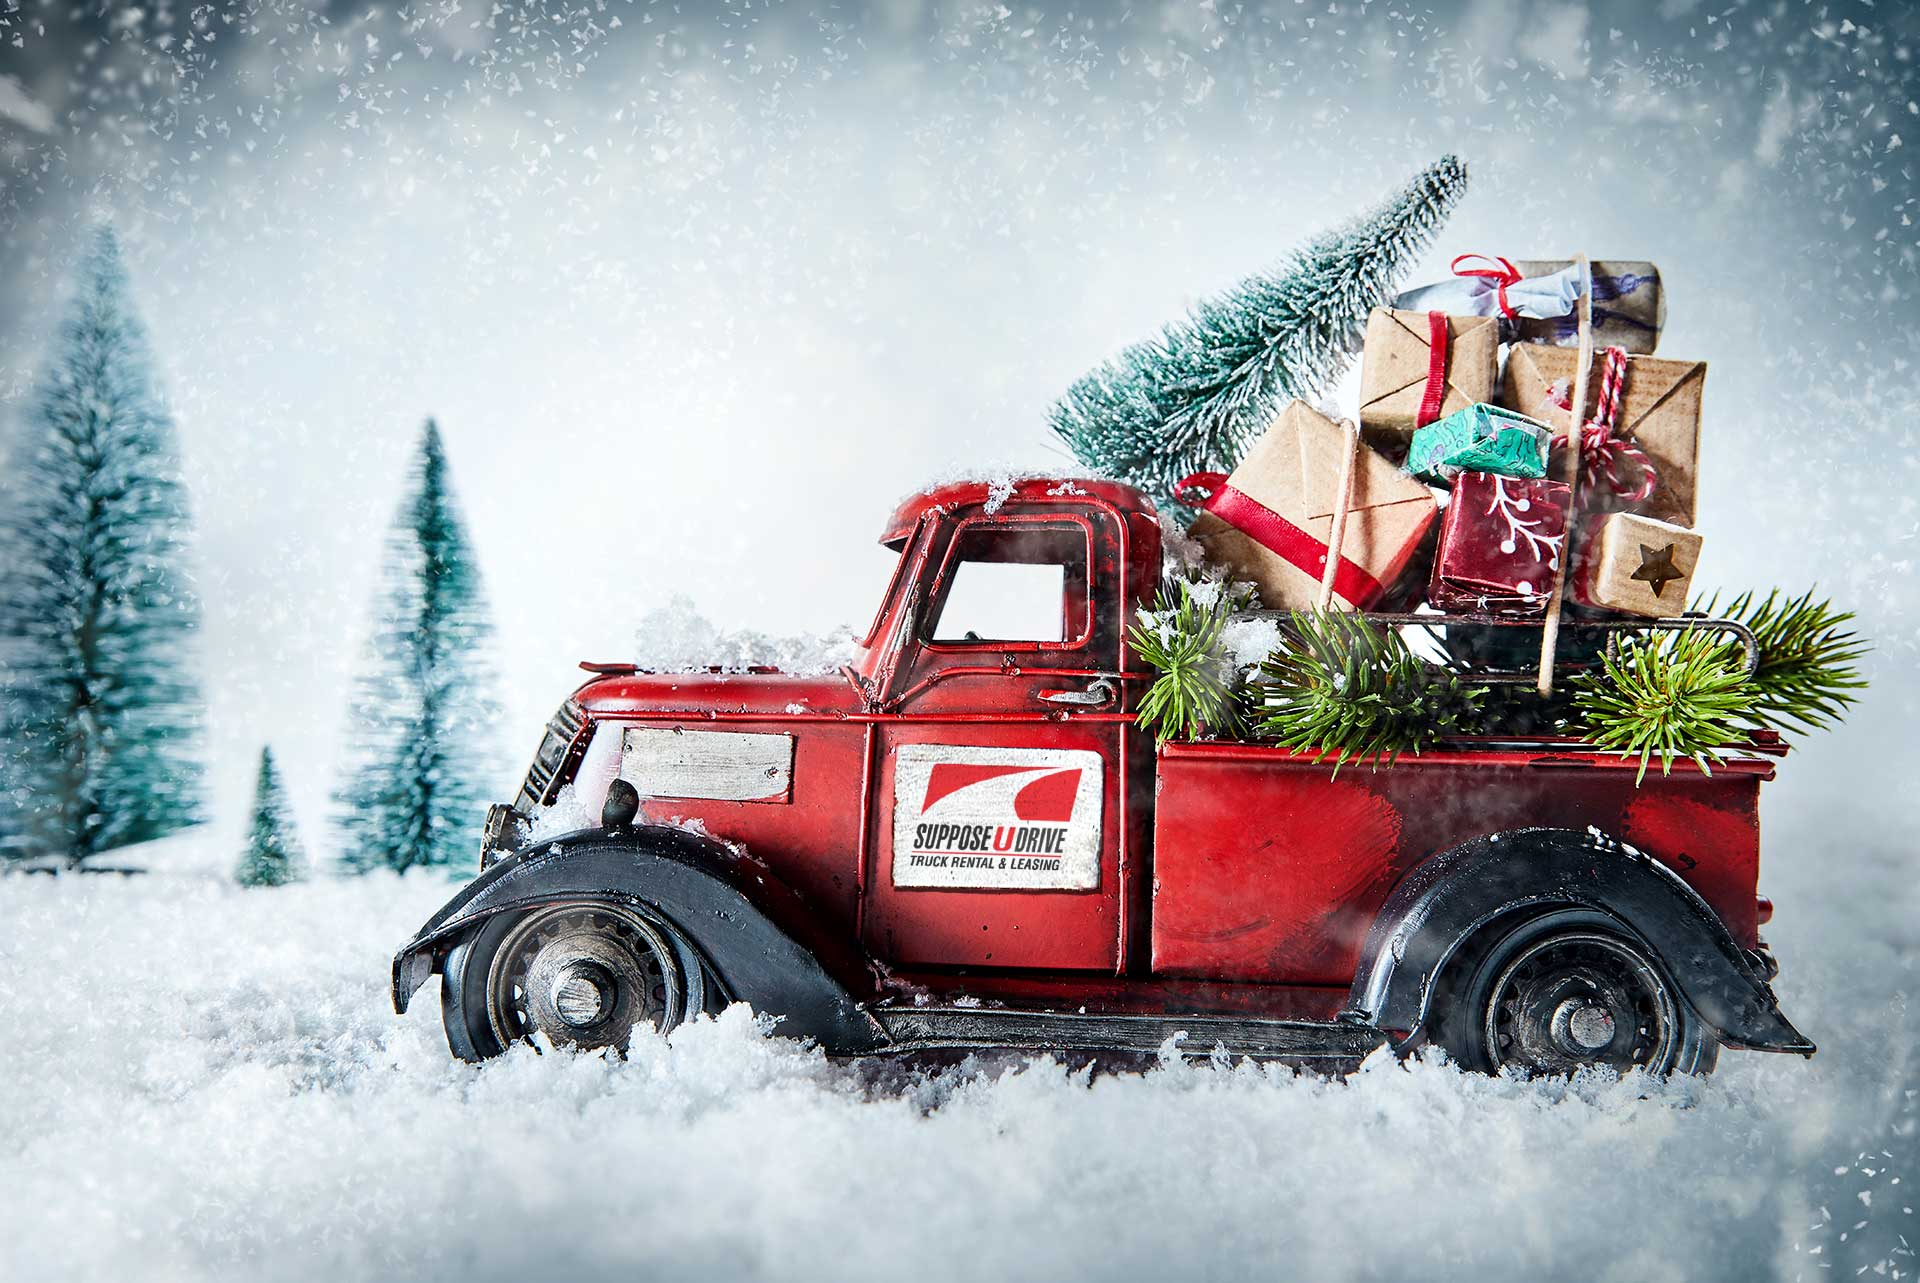 9 Great Gifts For The Truck Driver In Your Life-Suppose U Drive